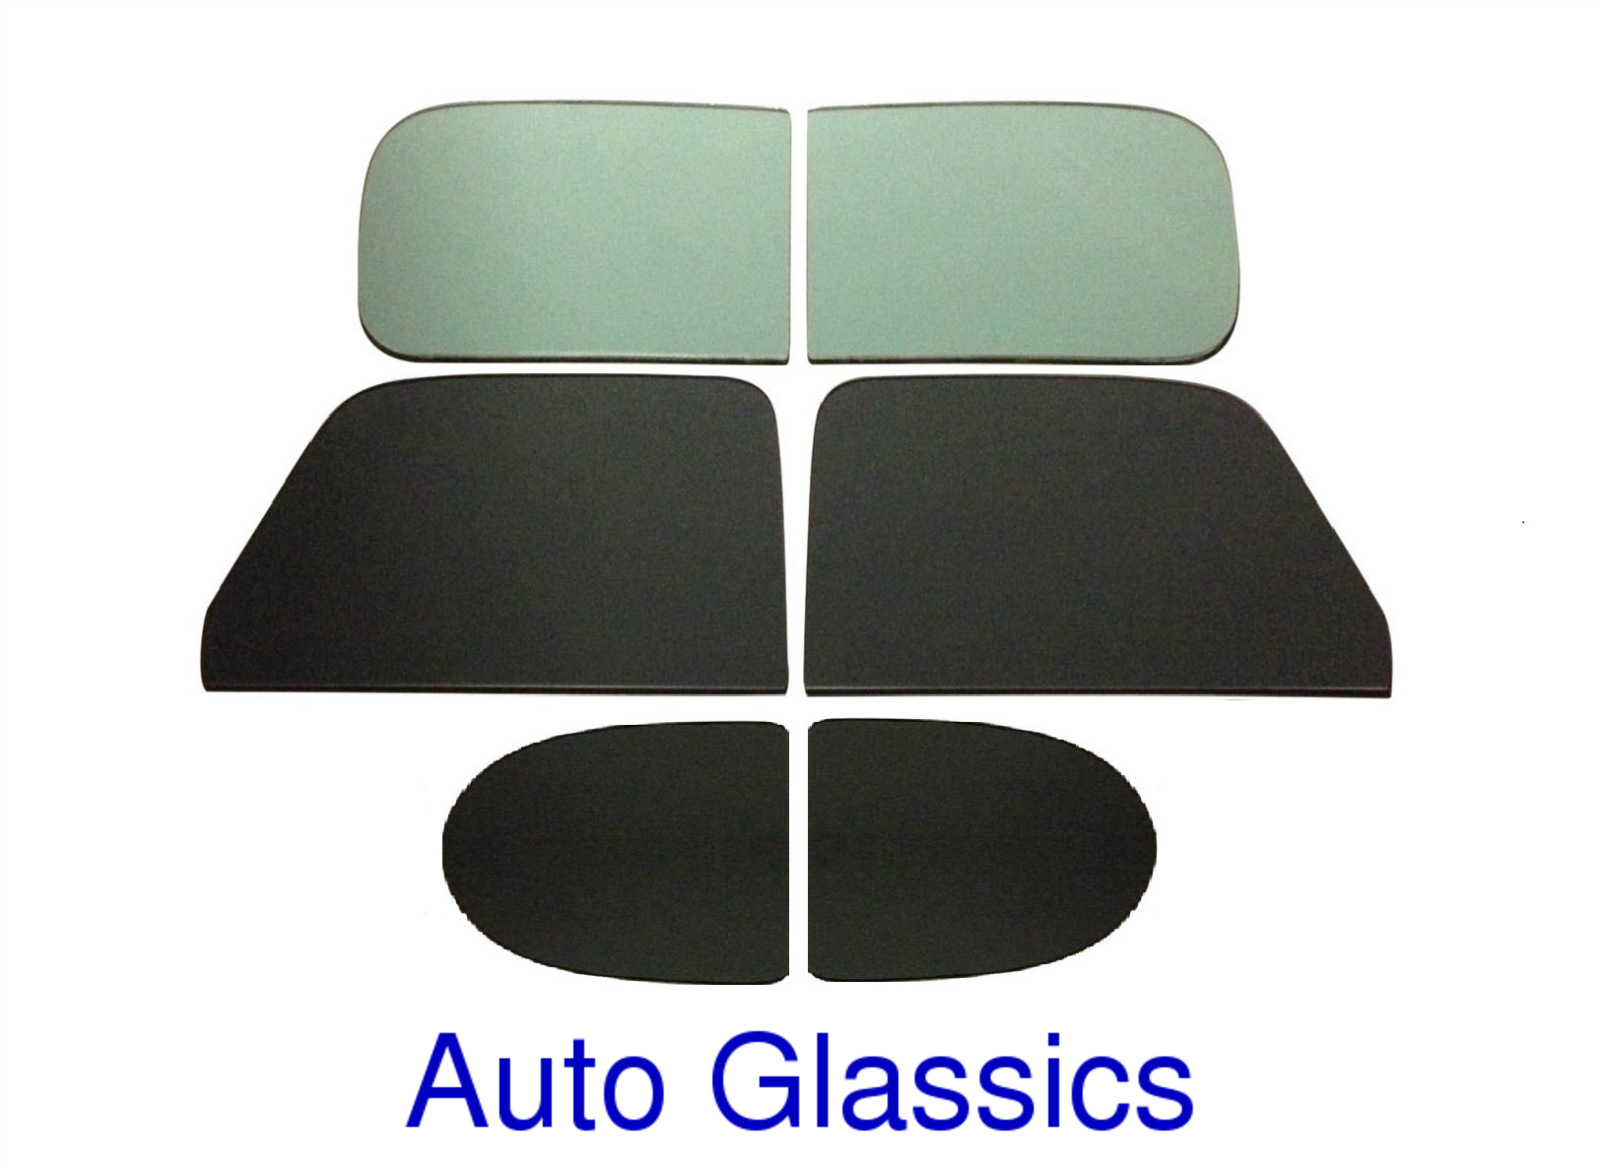 1939 1940 1941 1942 1946 Chevrolet Panel Truck Auto Glass Kit New Ford Delivery Aut